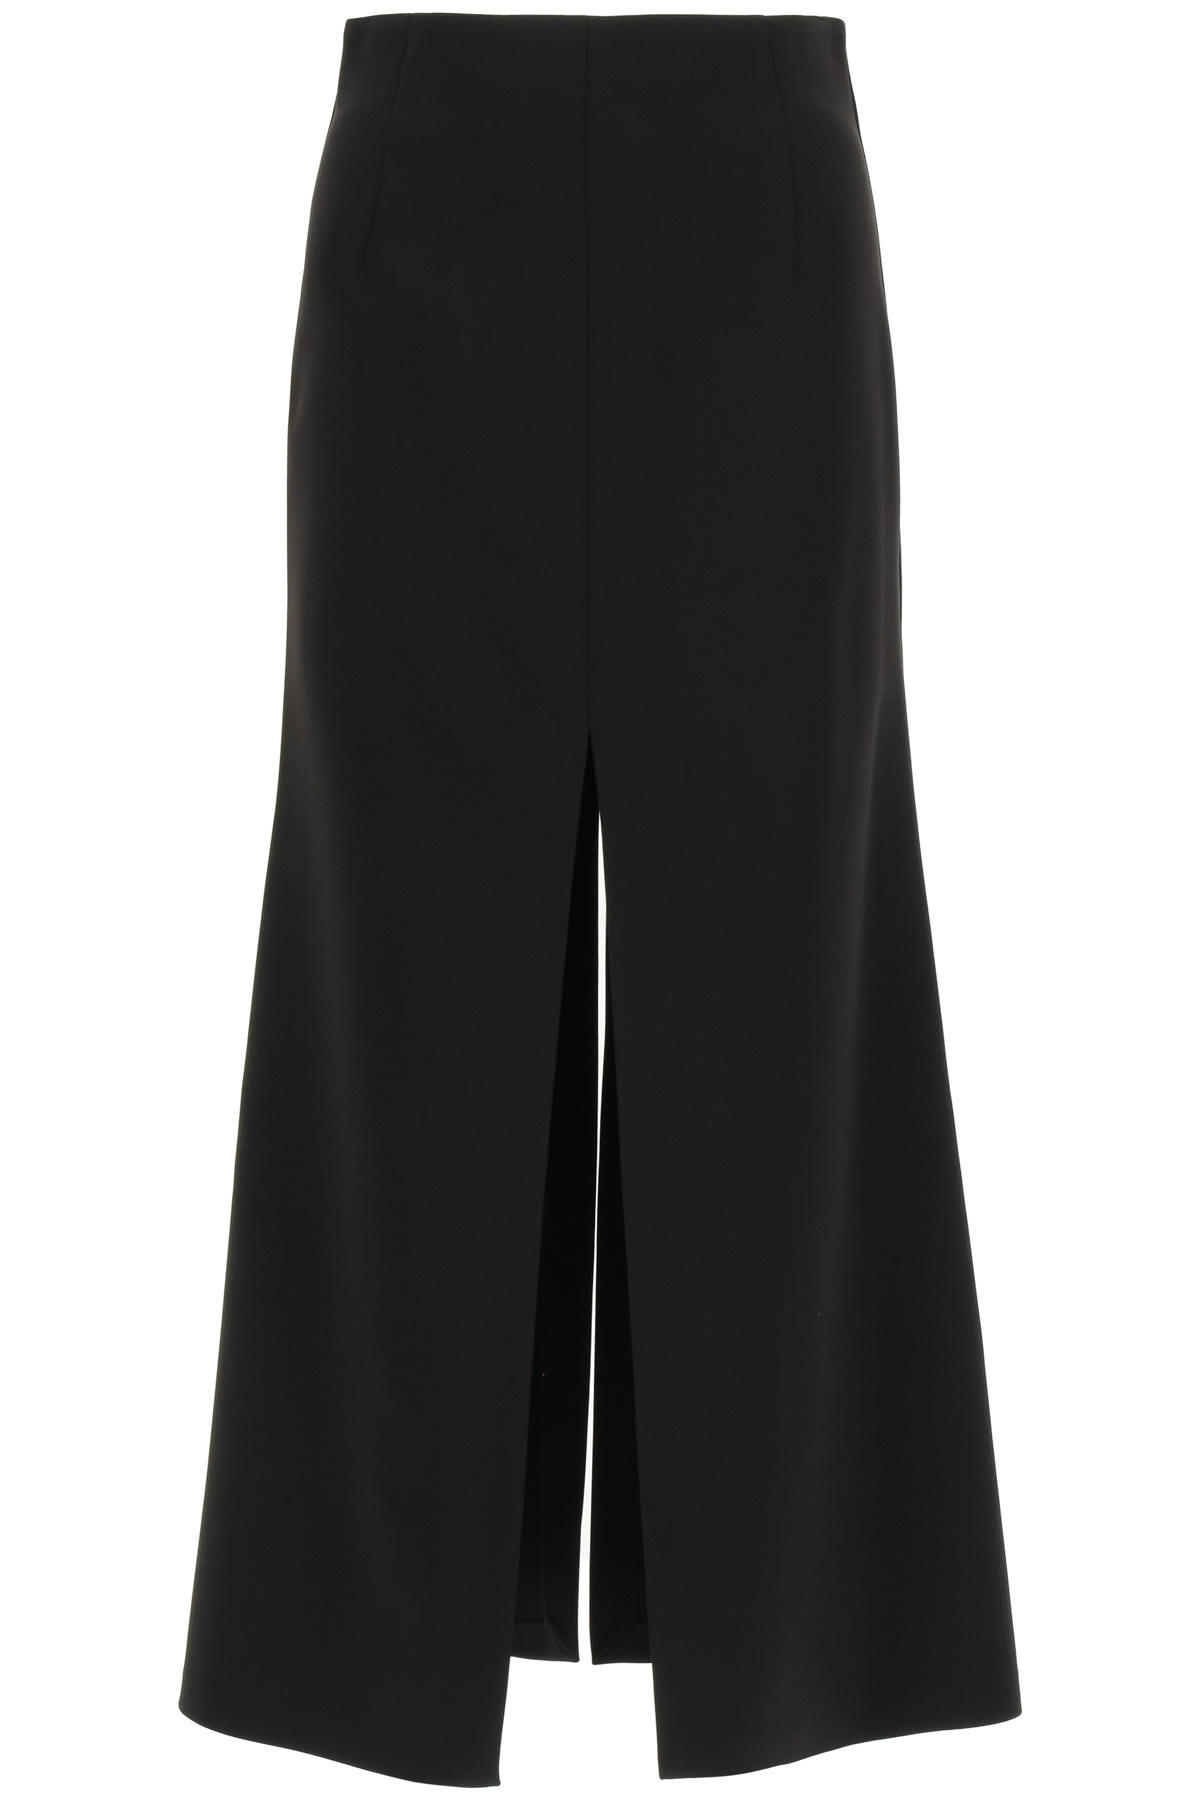 A.w.a.k.e. Skirts LONG SKIRT IN CREPE